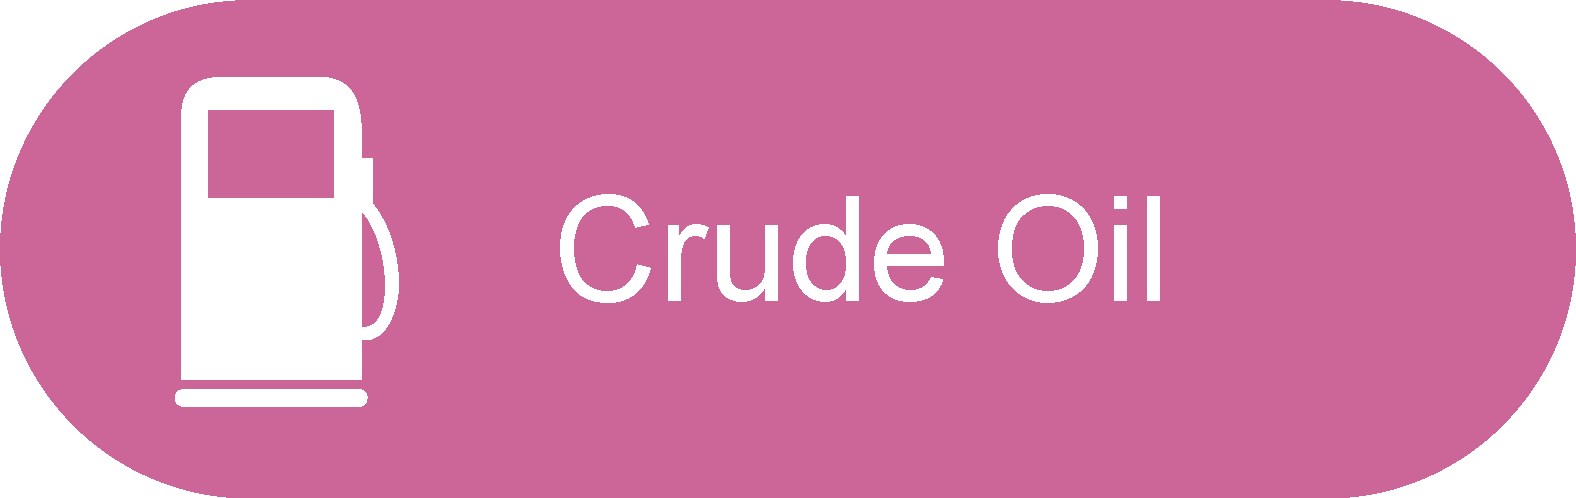 Energy Commodity Indicators – Crude Oil and Refined Petroleum Products